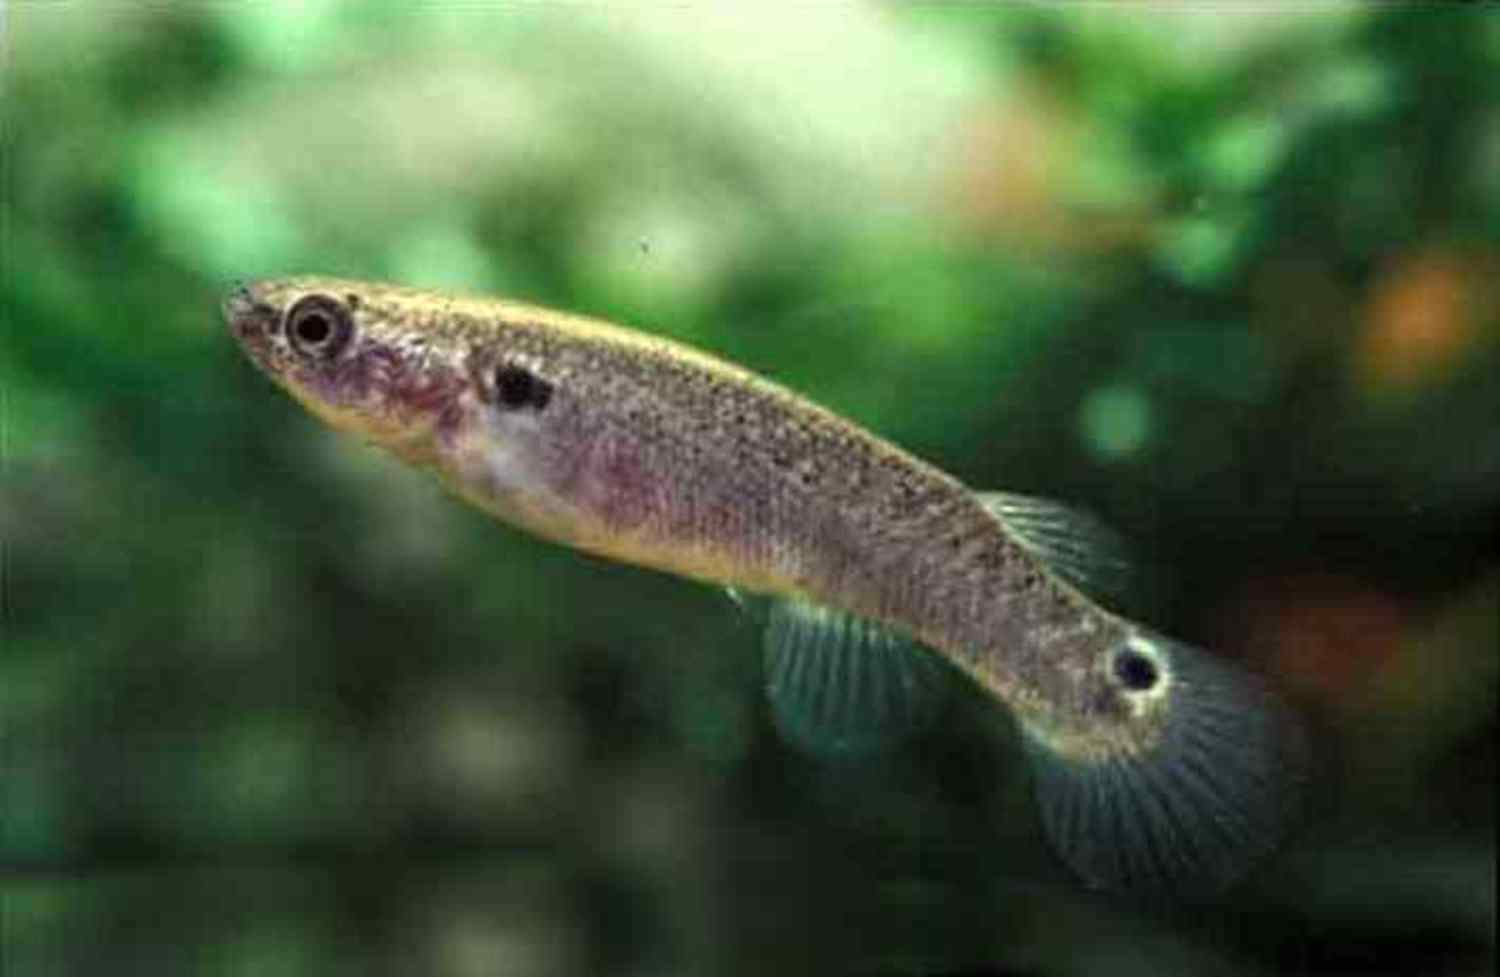 The Mangrove Killifish